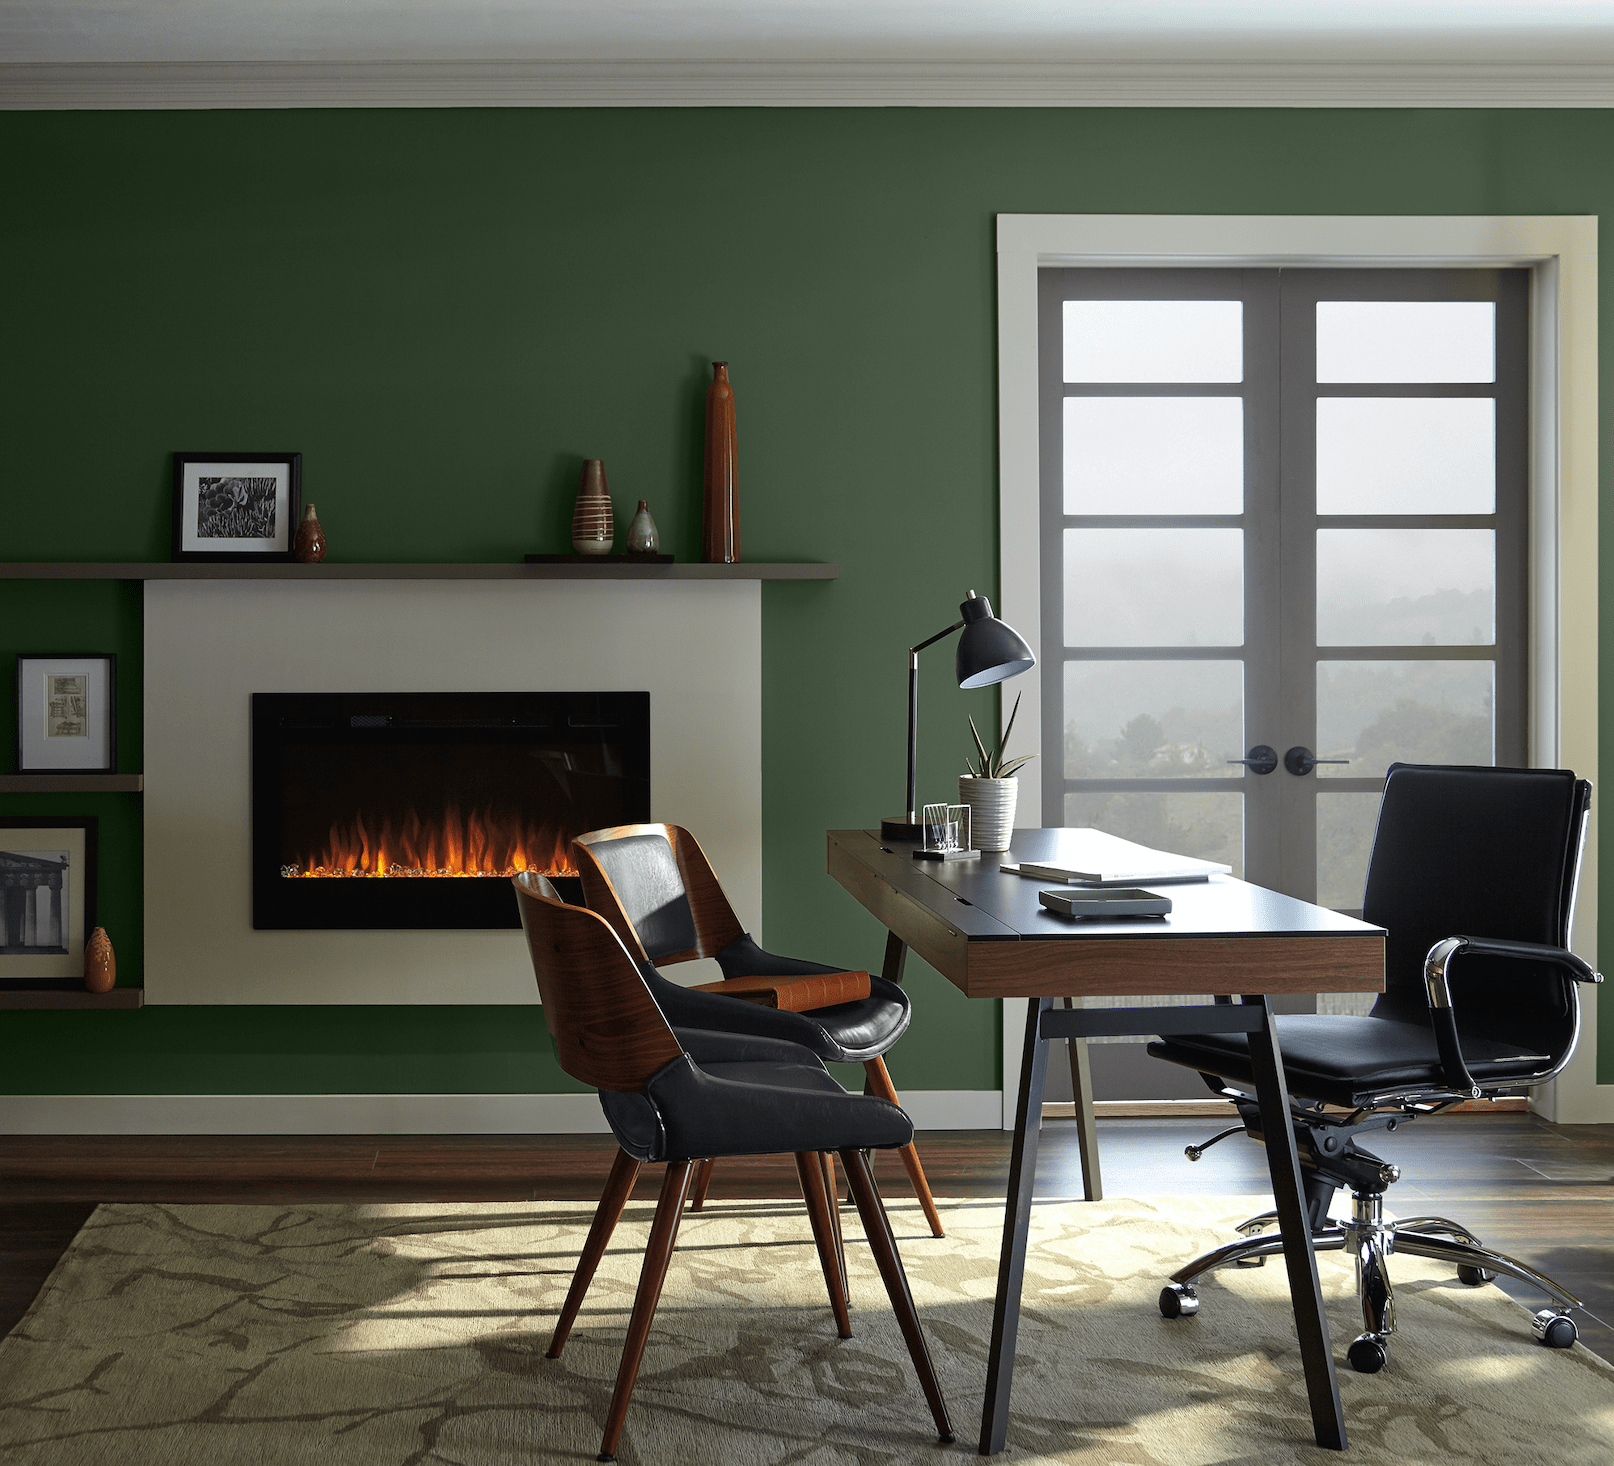 Behr Paint Announces Color Trends 2021 Palette That Focuses On Elevated Comfort